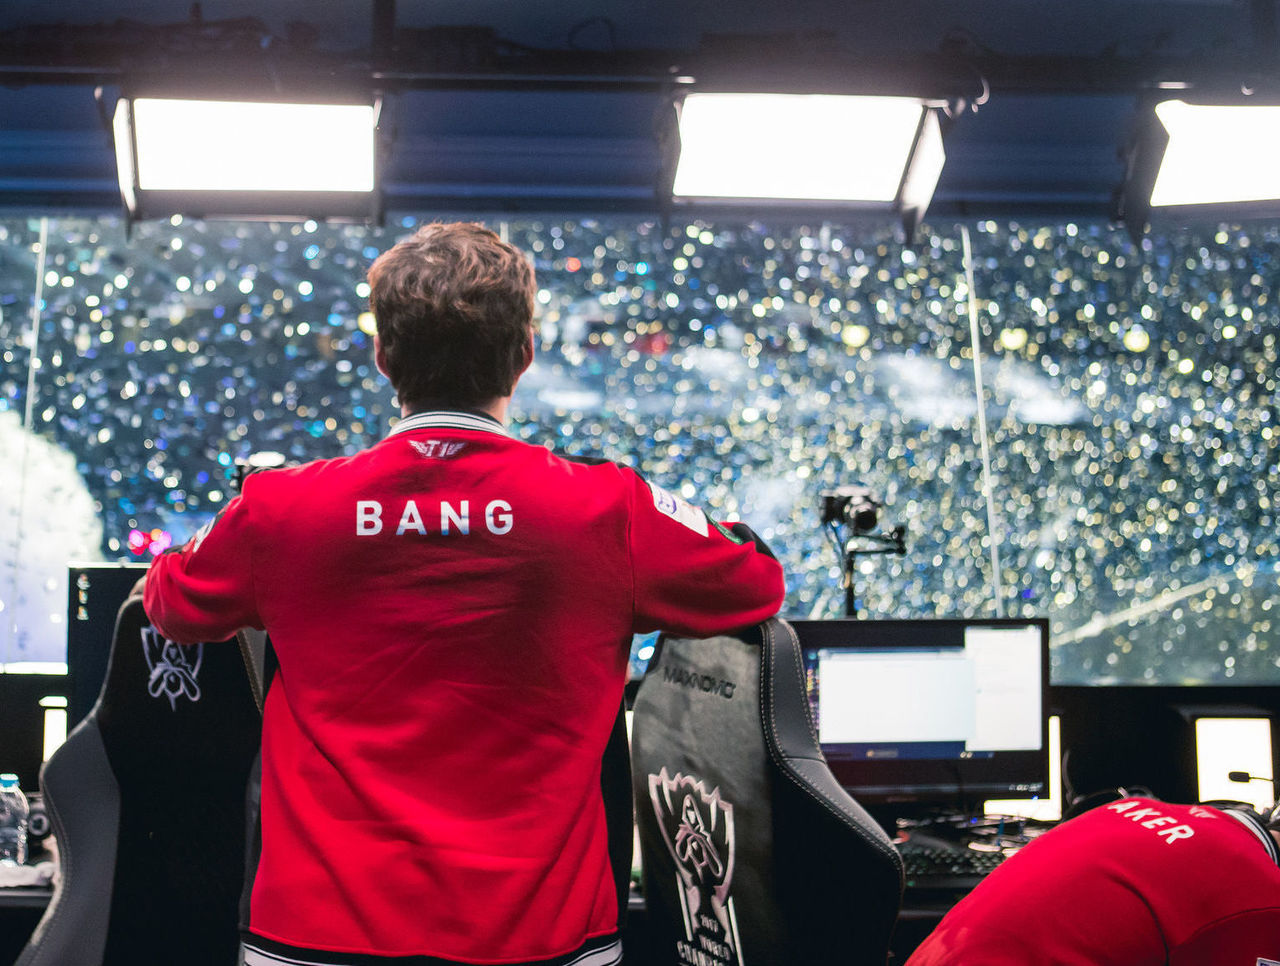 theScore esports Daily (Nov. 23): Bang joins 100 Thieves, GorillA completes Misfits' loaded roster and pieliedie fills Mushi's spot on Mineski